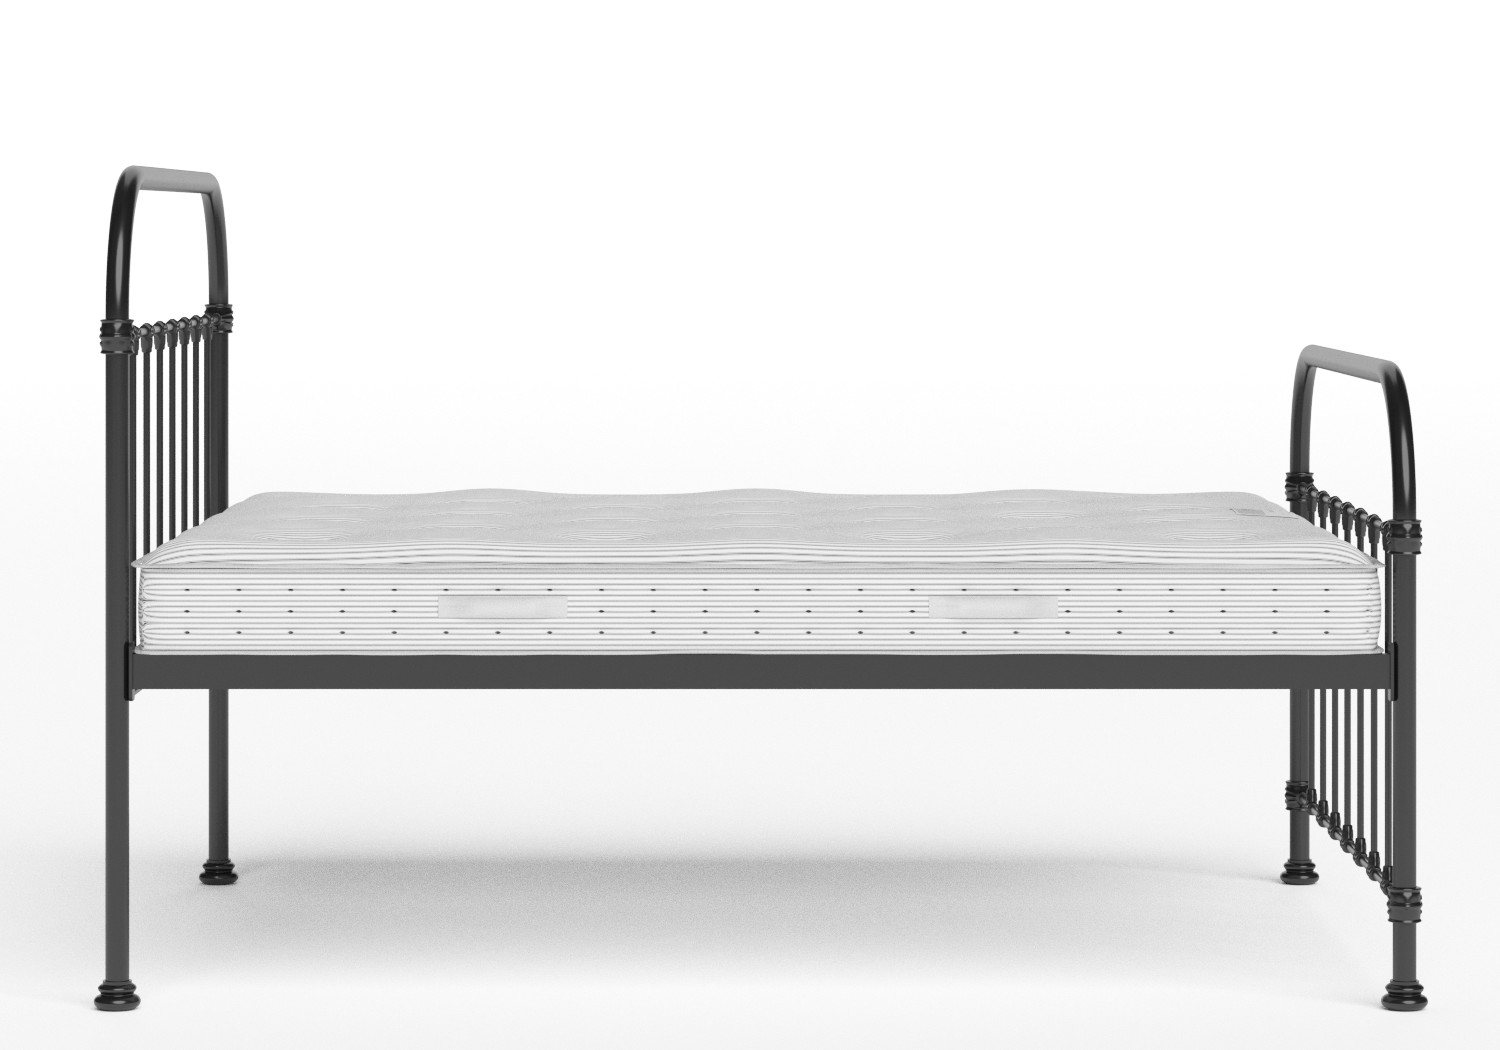 Timolin Iron/Metal Bed in Satin Black shown with Juno 1 mattress